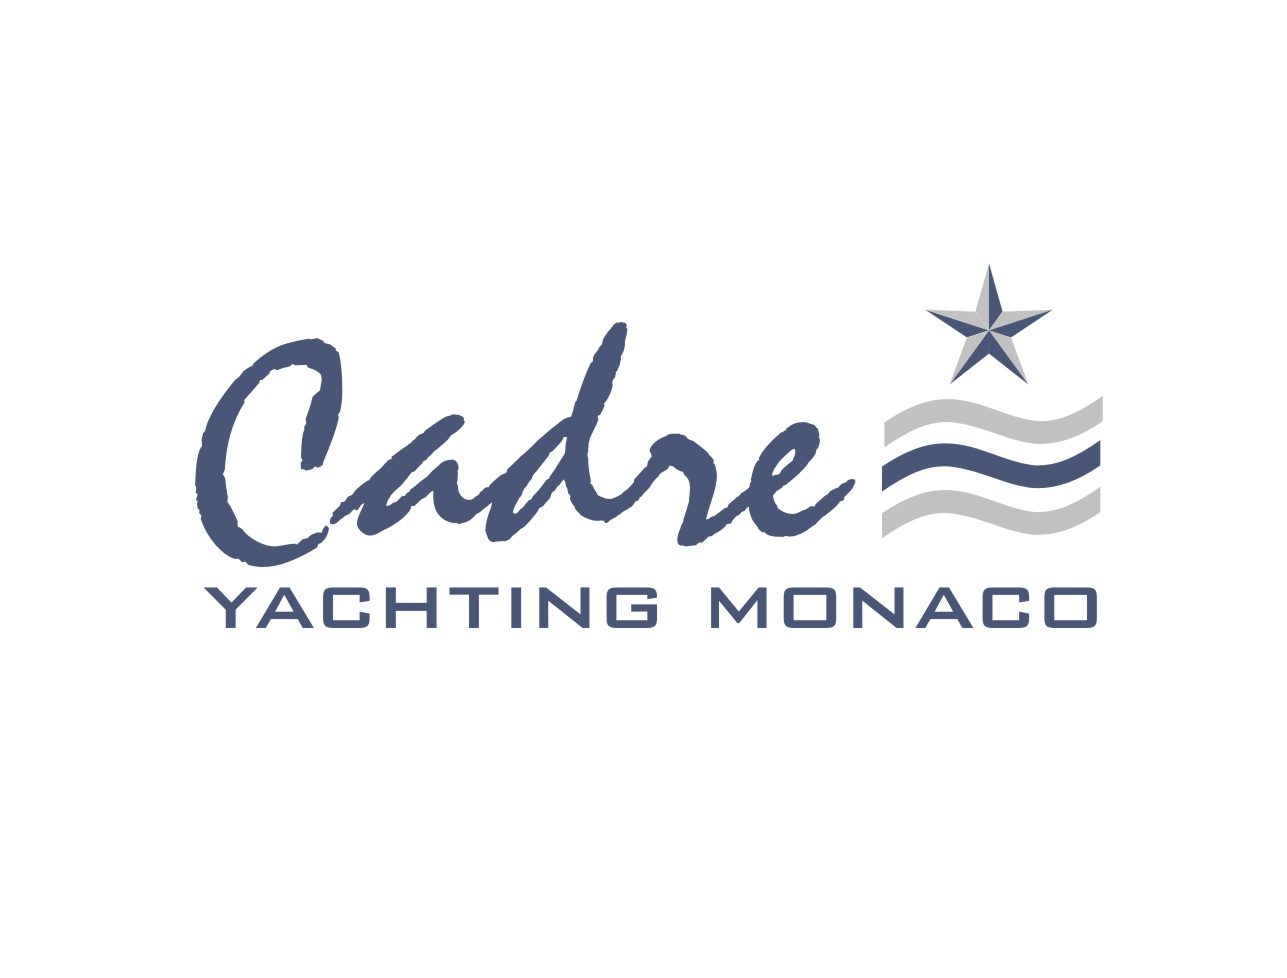 Logo Design by ggrando - Entry No. 333 in the Logo Design Contest New Logo Design for Cadre Yachting Monaco.